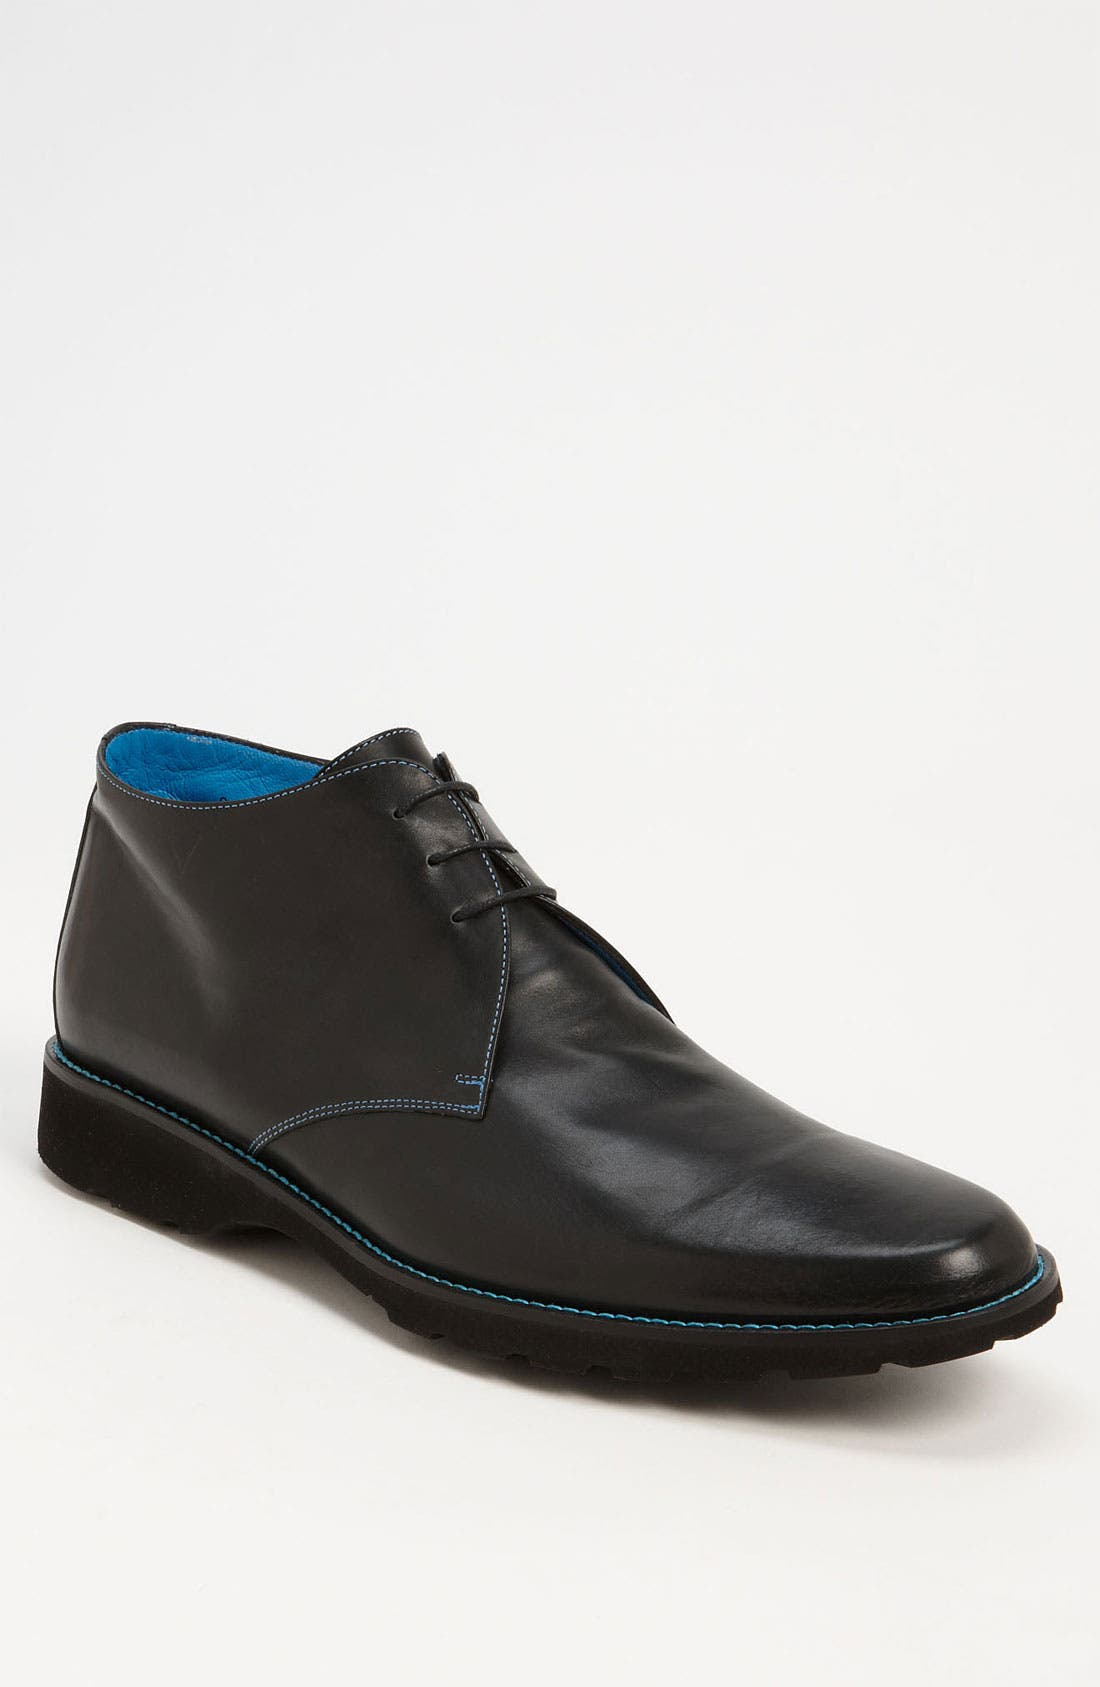 Alternate Image 1 Selected - Michael Toschi 'SL800' Chukka Boot